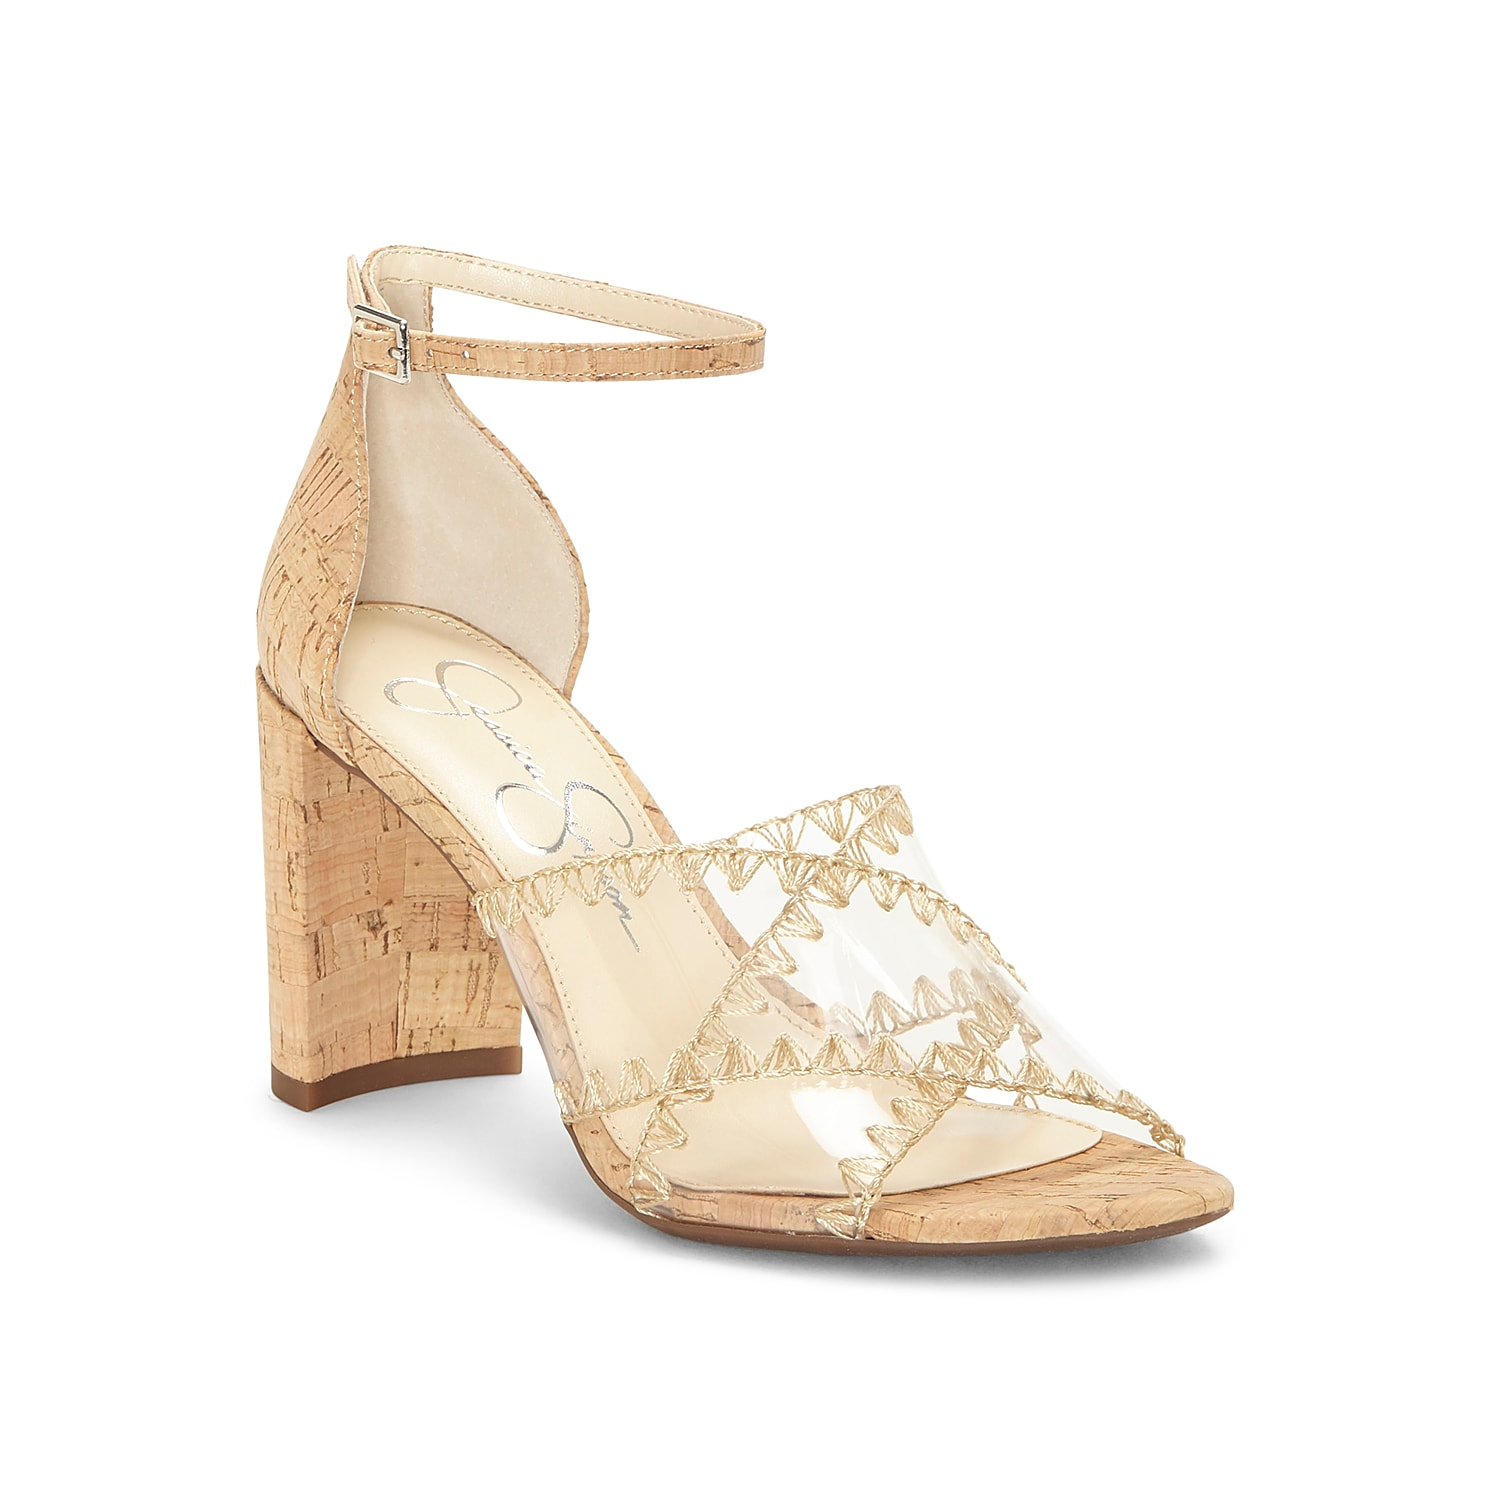 Keep your looks trending with the Nikaye sandal from Jessica Simpson. This silhouette is fashioned with lucite crisscross straps and a thin ankle strap for secured steps!